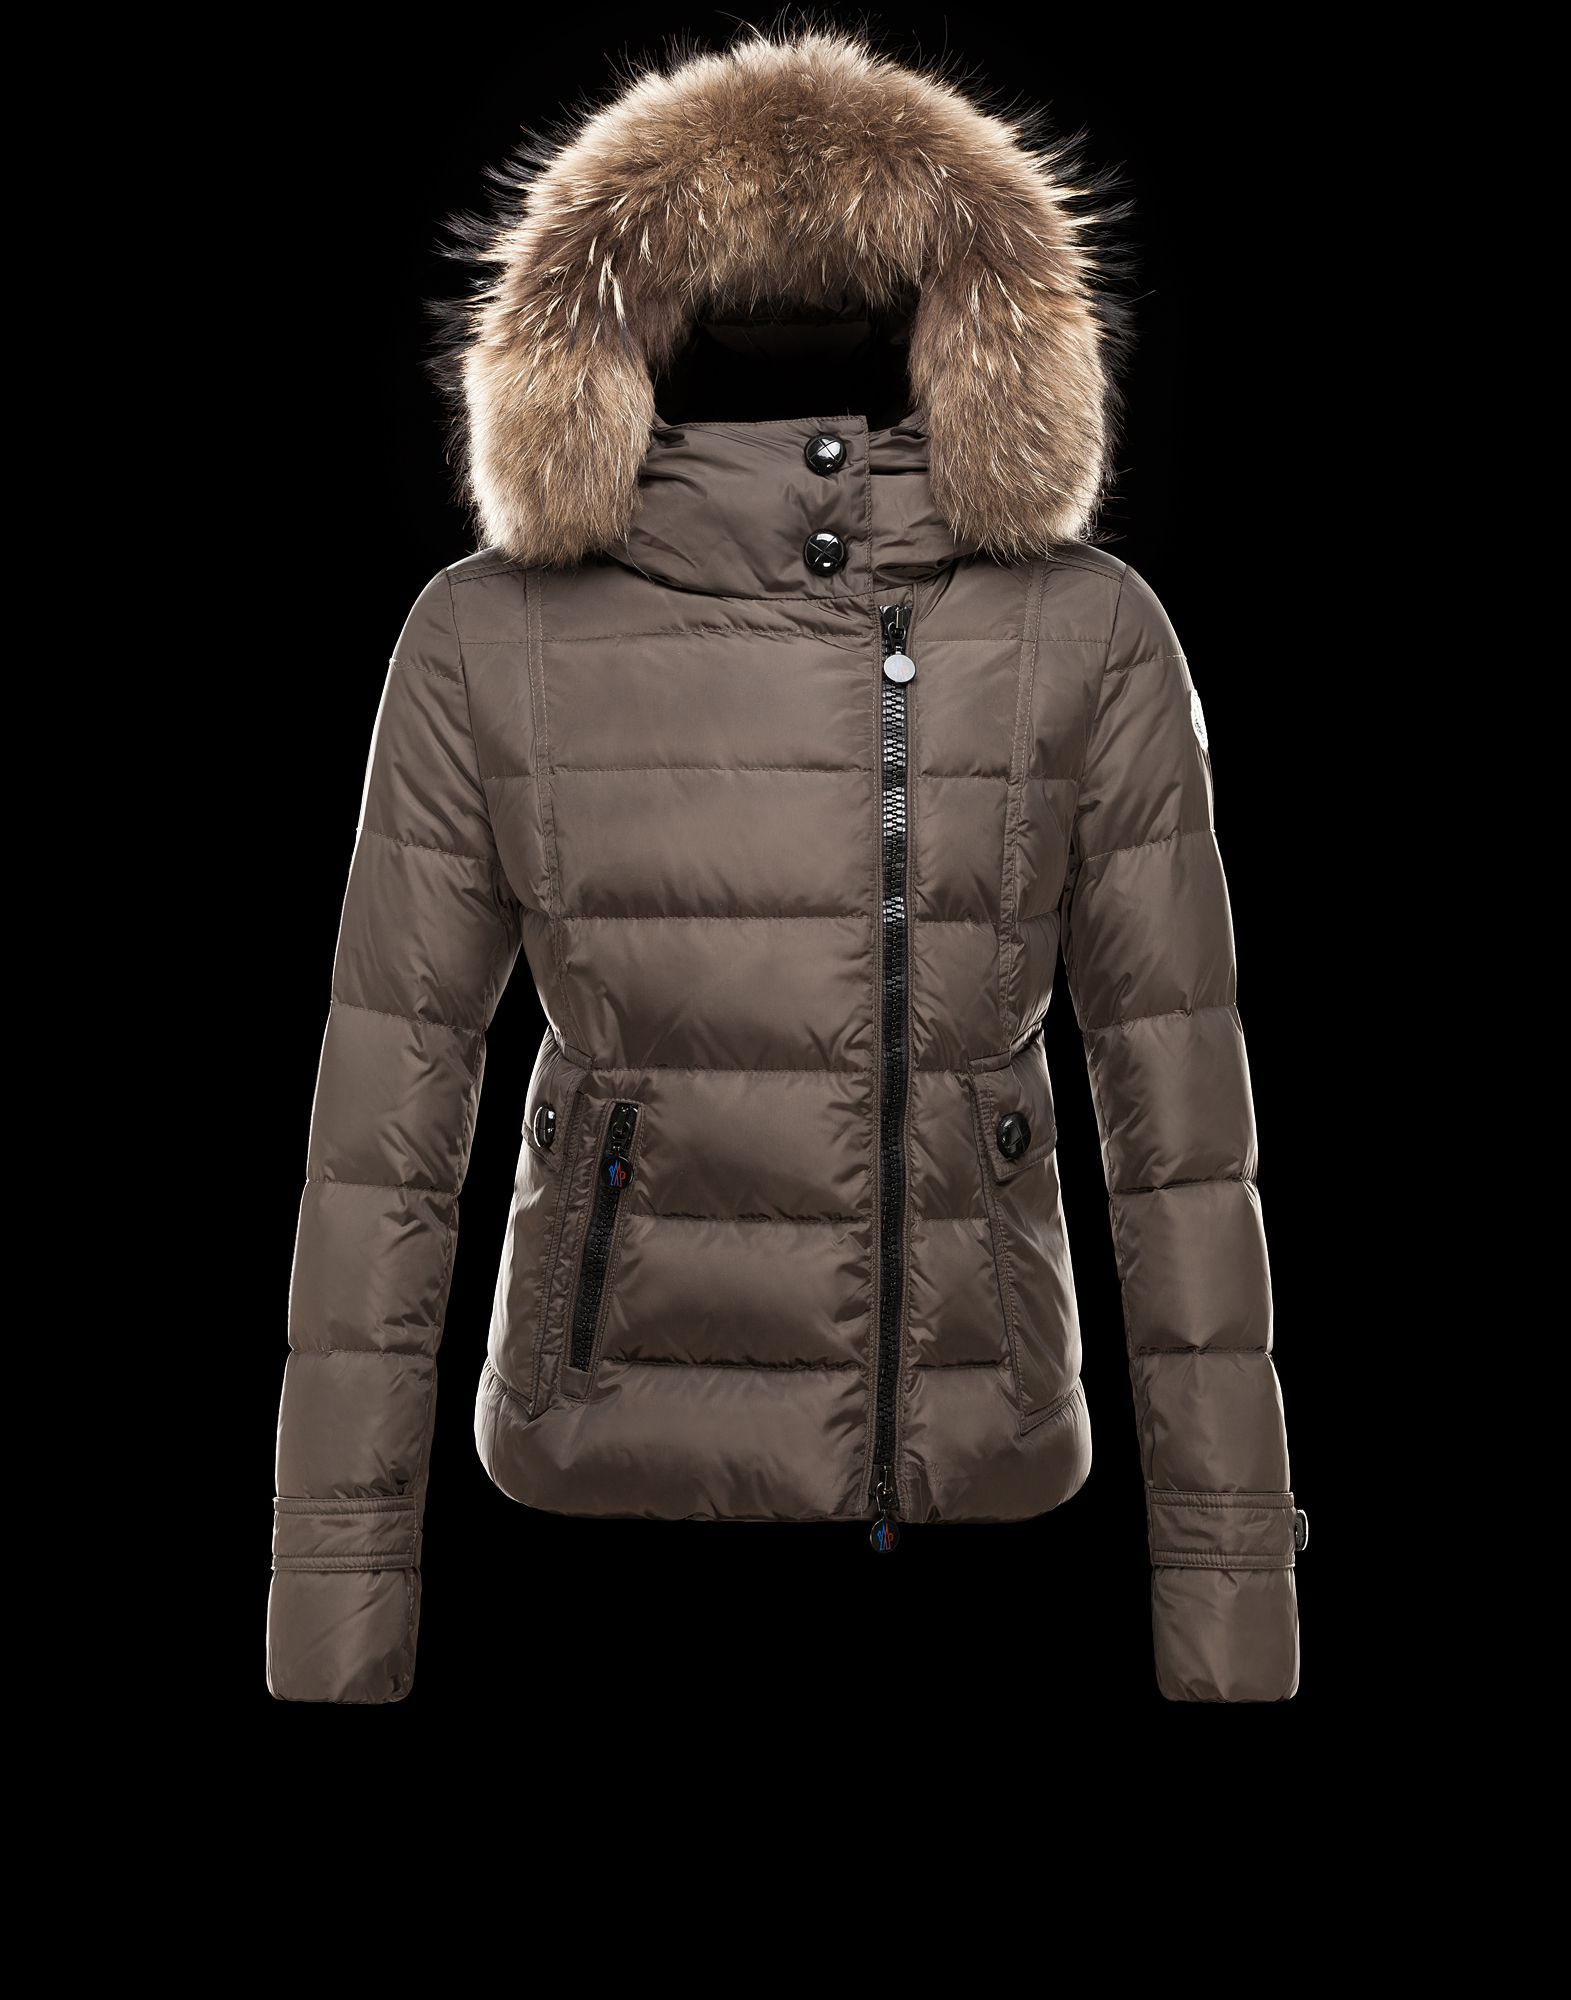 166f002bfd8c Jacket Women - Outerwear Women on Moncler Online Store